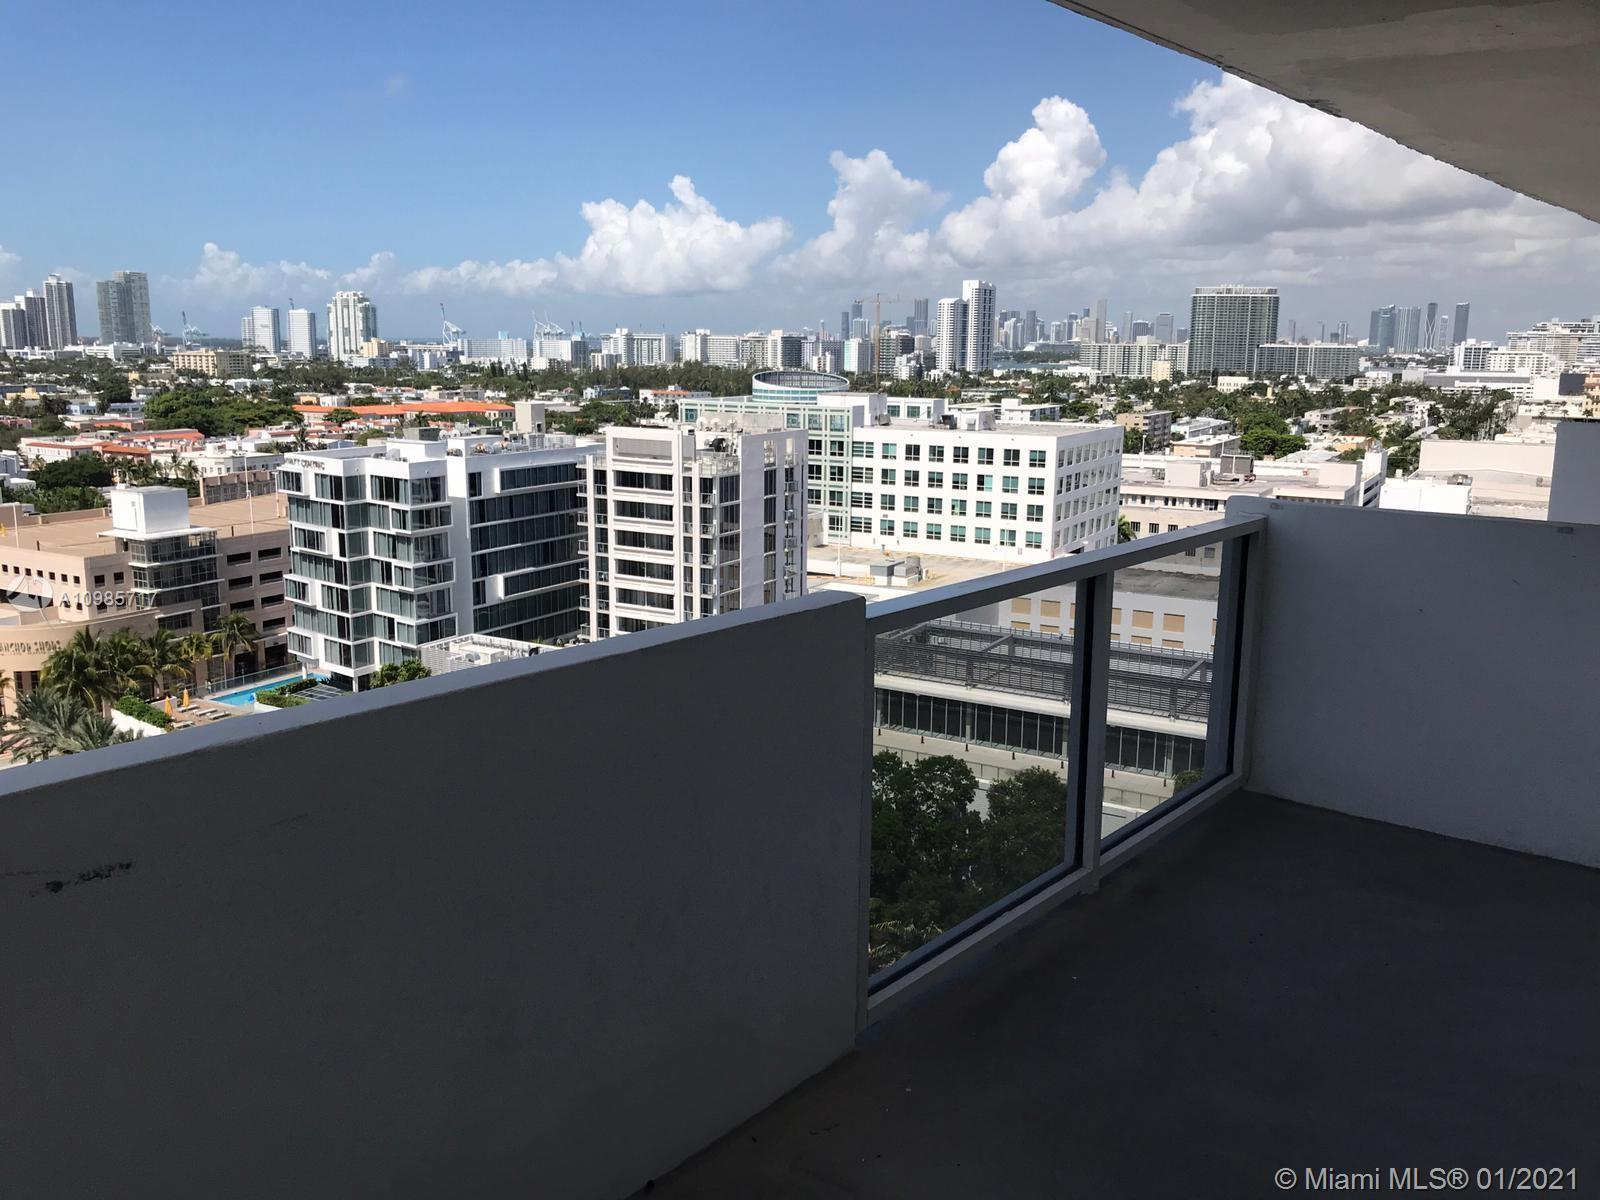 Attention rare find at Decoplage, 16th fl studio w/balcony, spectacular sweeping South West East vie